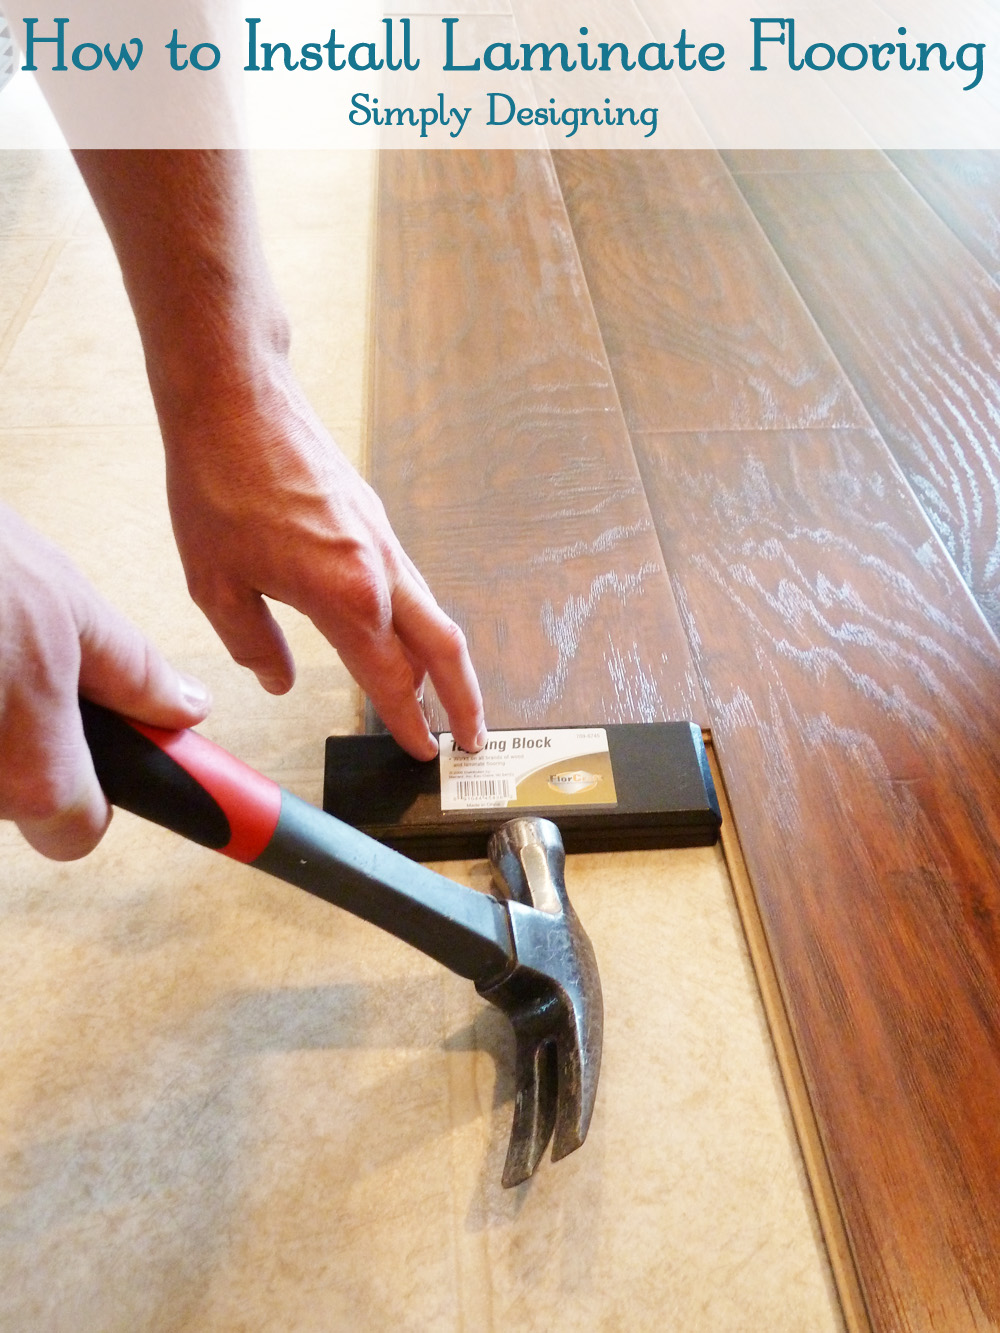 How To Install Laminate Flooring Diy Homeimprovement Laminateflooring At